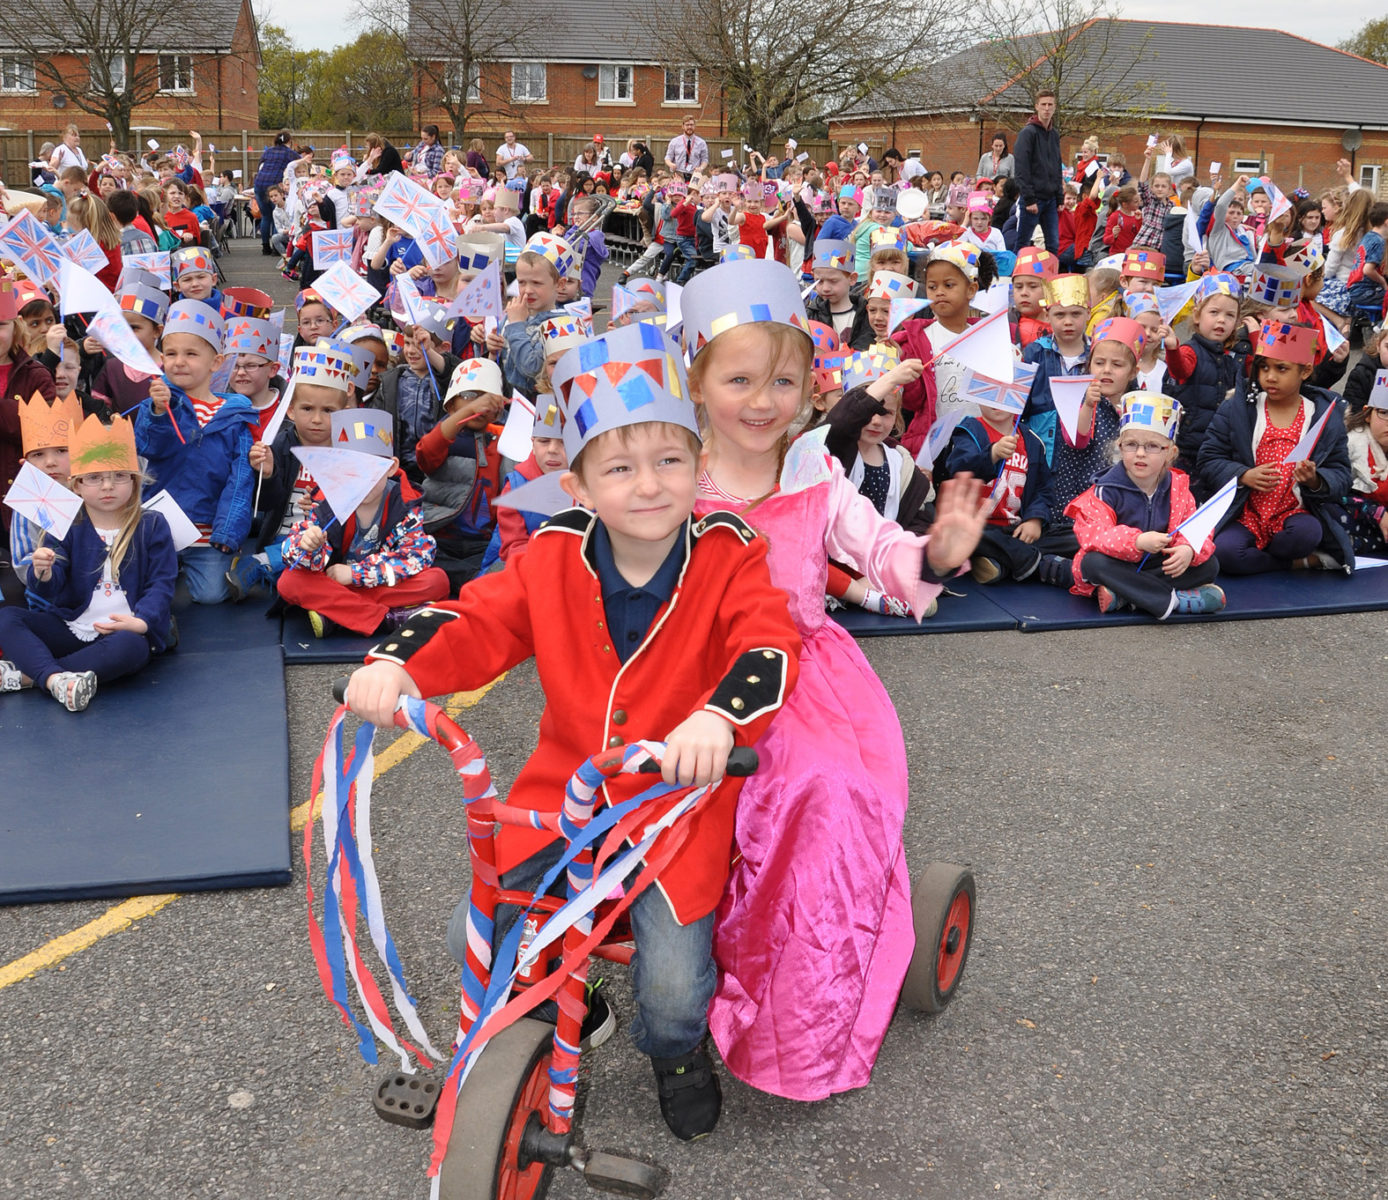 The children from Elm Academy celebrated the Queen's 90th birthday with a street party and a day of royal-themed activities.